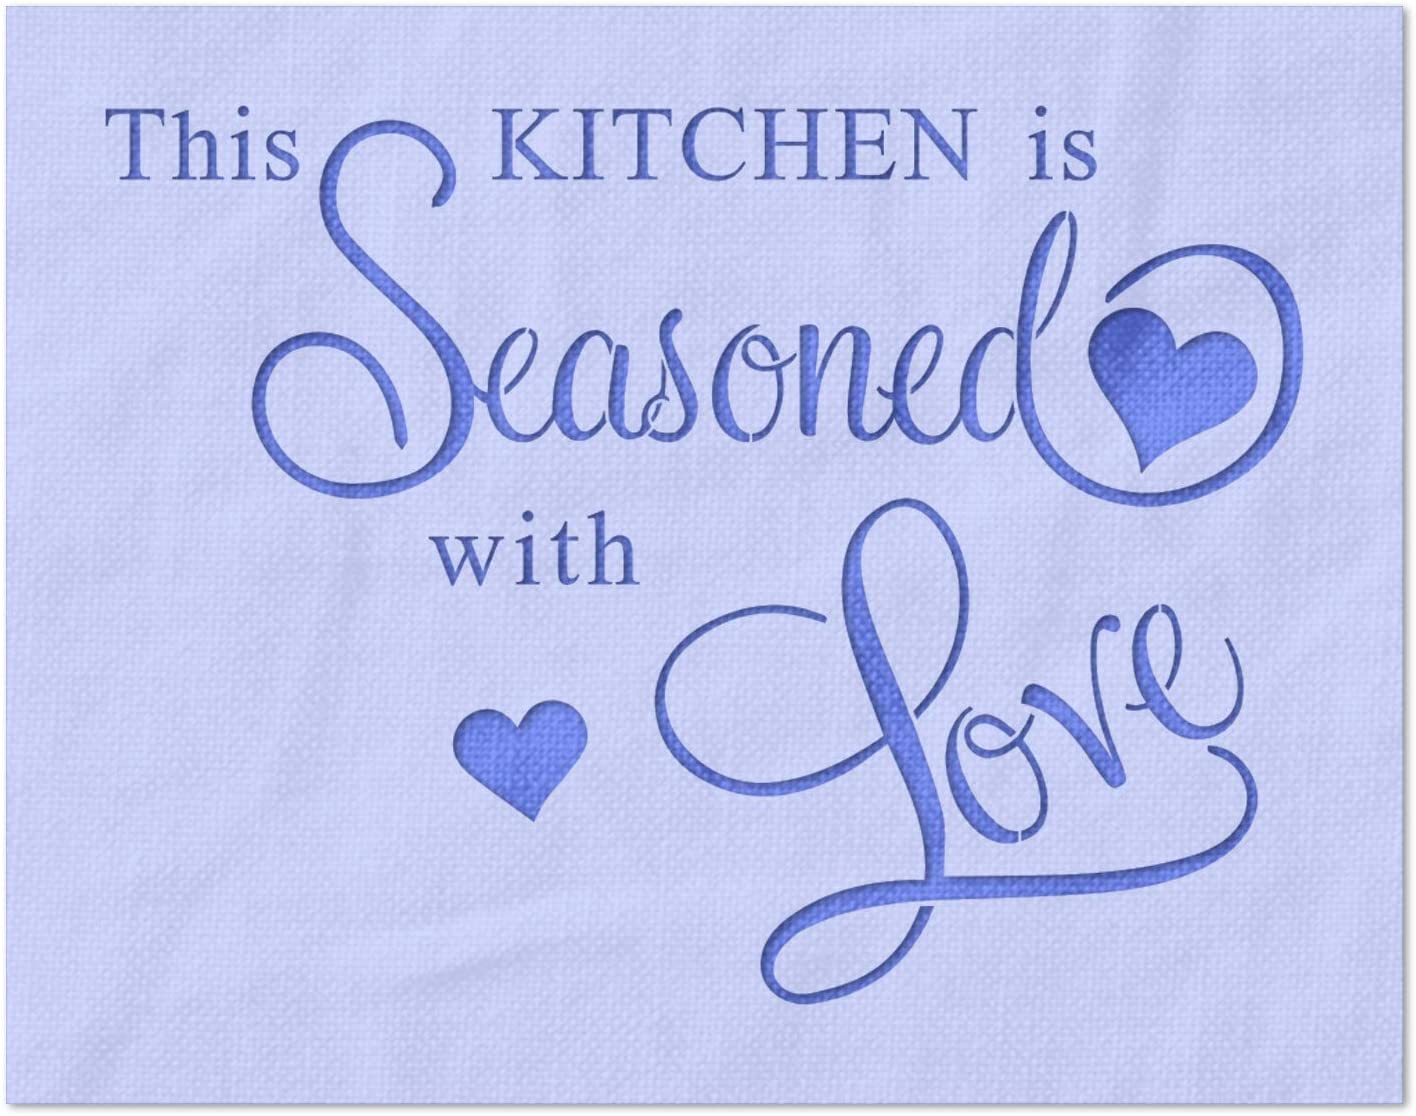 Stencil Stop The Kitchen is with - Bargain Love Seasoned Boston Mall Reusabl